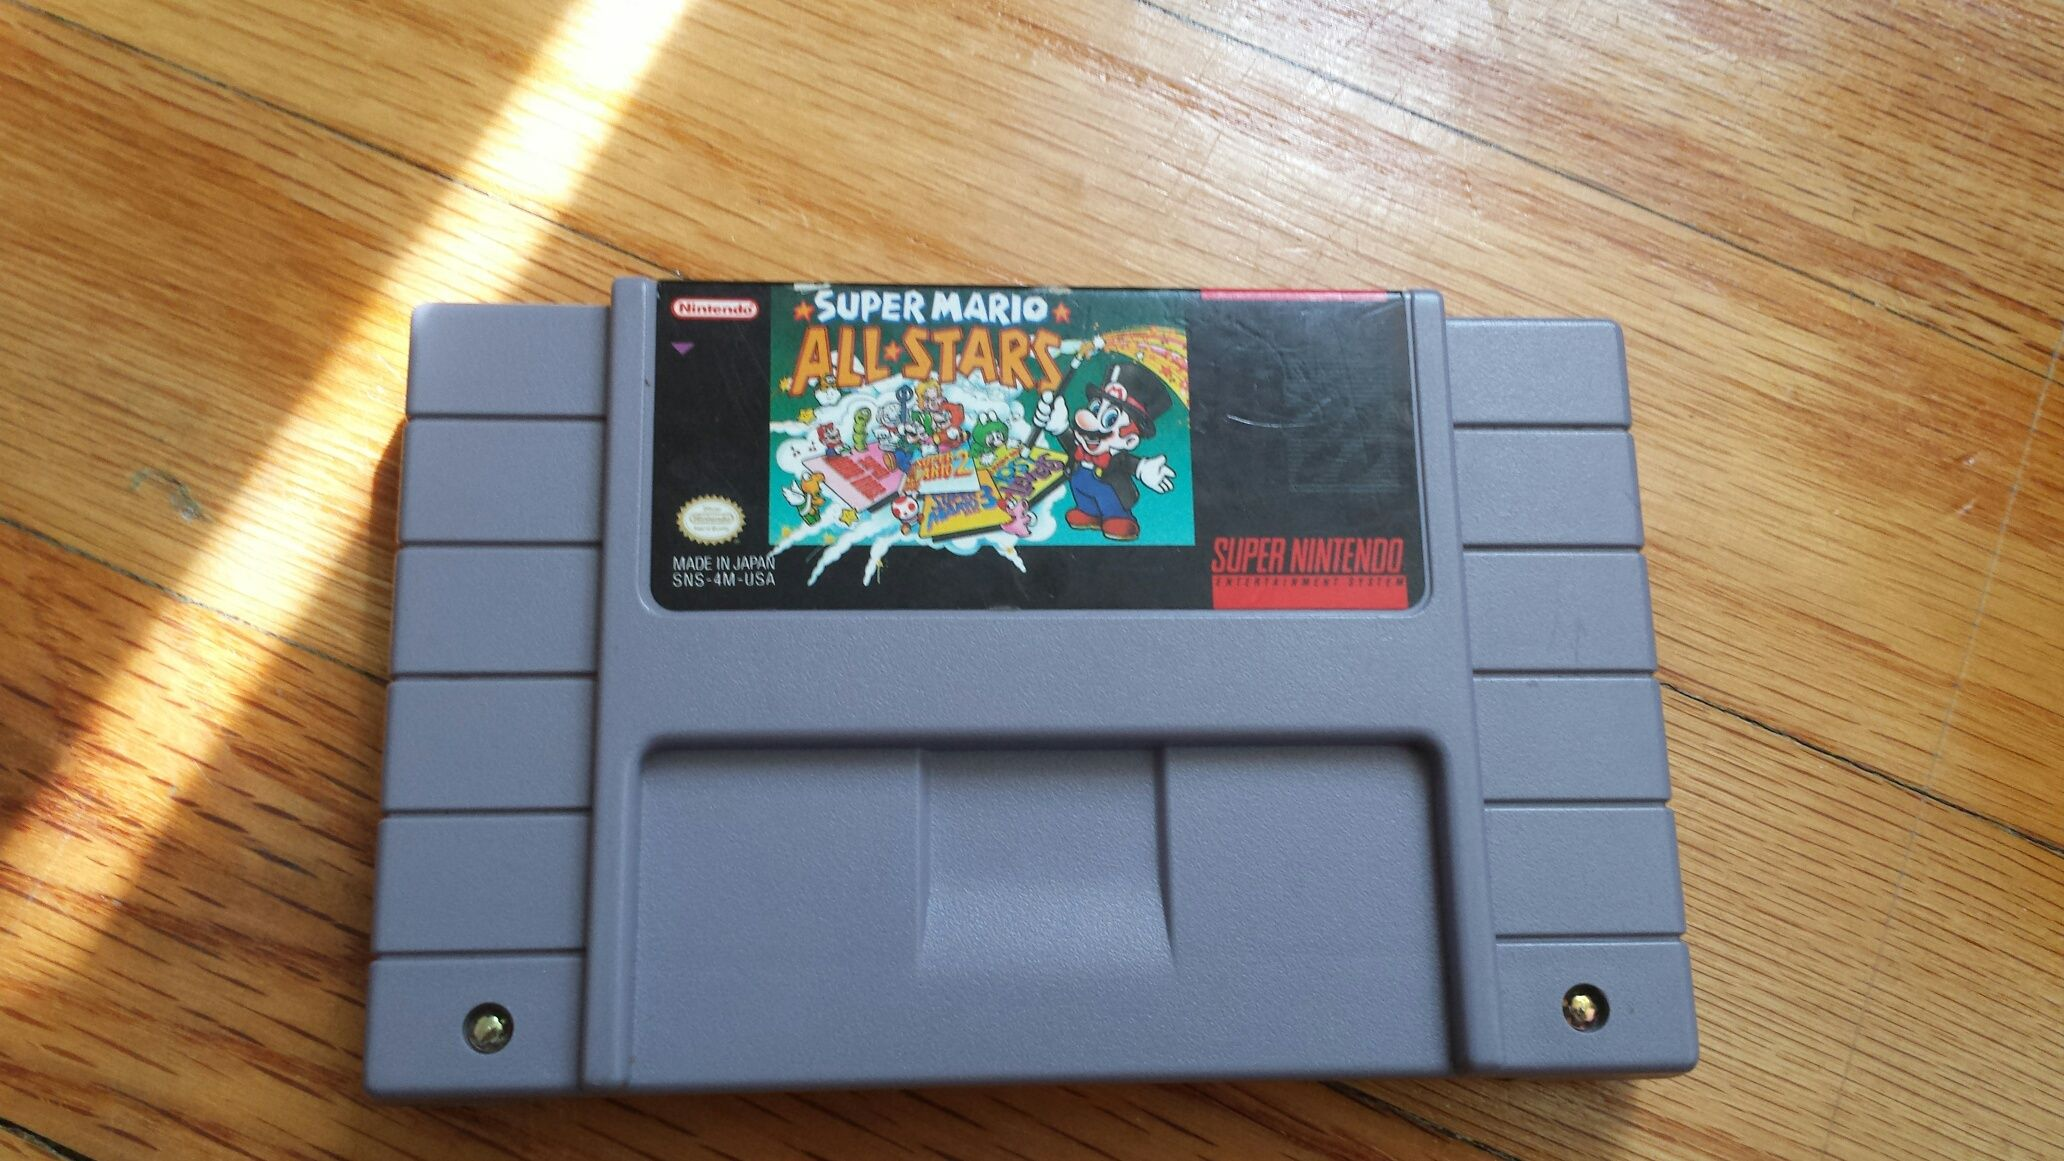 Super Mario All Stars Snes From Dreamshooters Super Mario All Stars Super Mario Super Mario Games